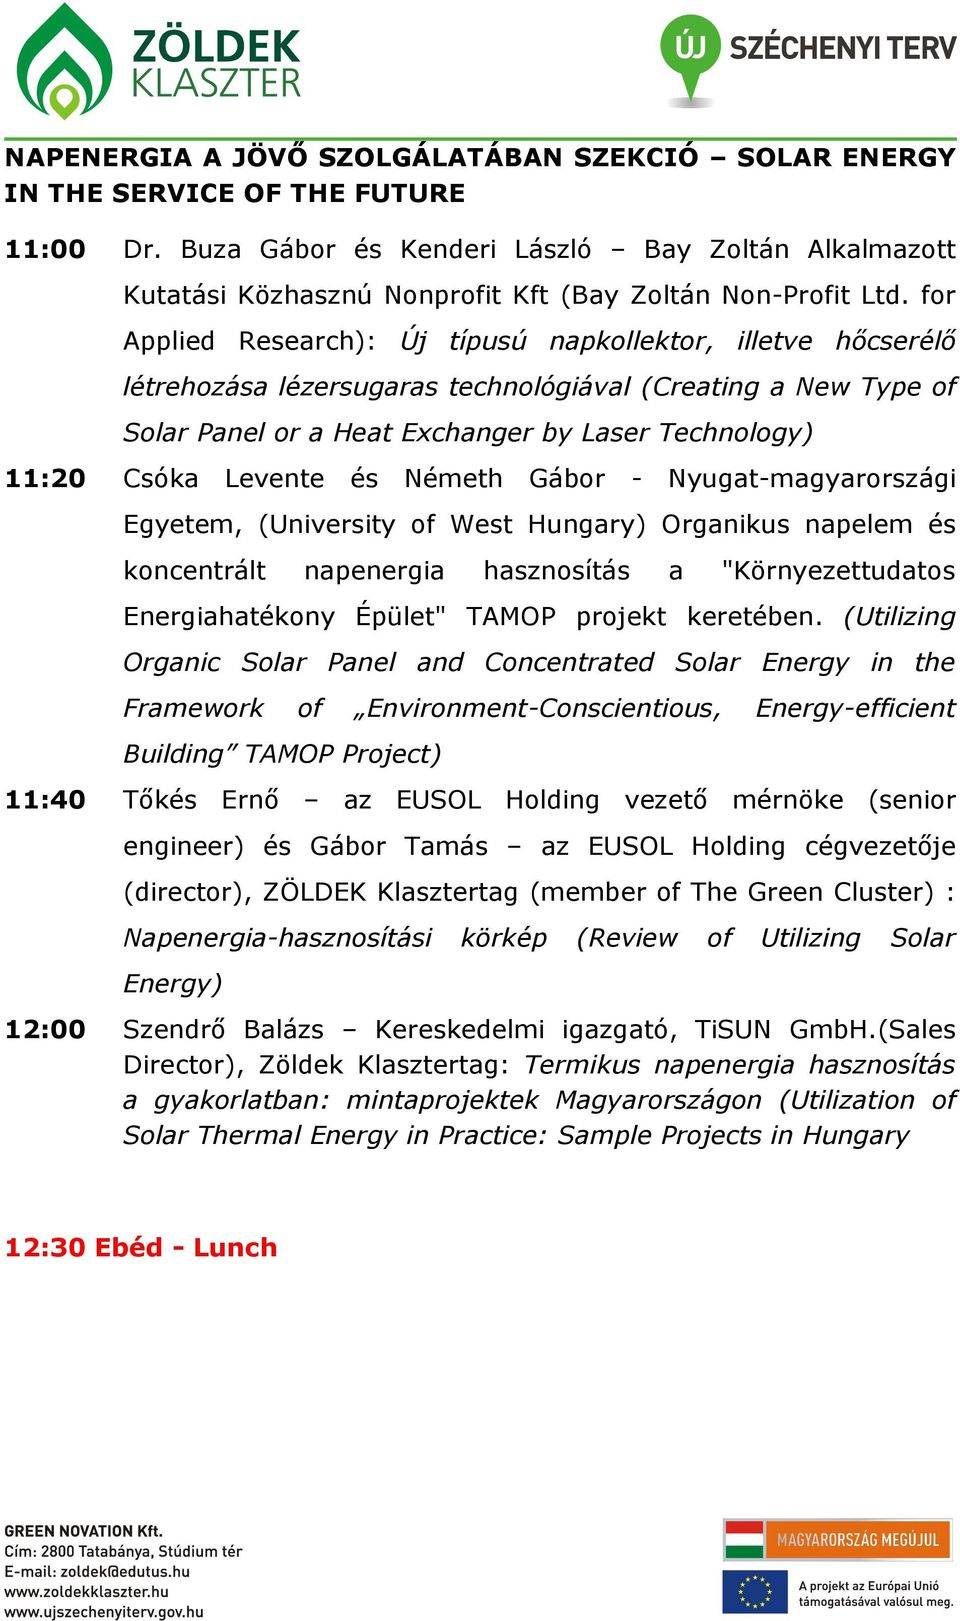 for Applied Research): Új típusú napkollektor, illetve hőcserélő létrehozása lézersugaras technológiával (Creating a New Type of Solar Panel or a Heat Exchanger by Laser Technology) 11:20 Csóka